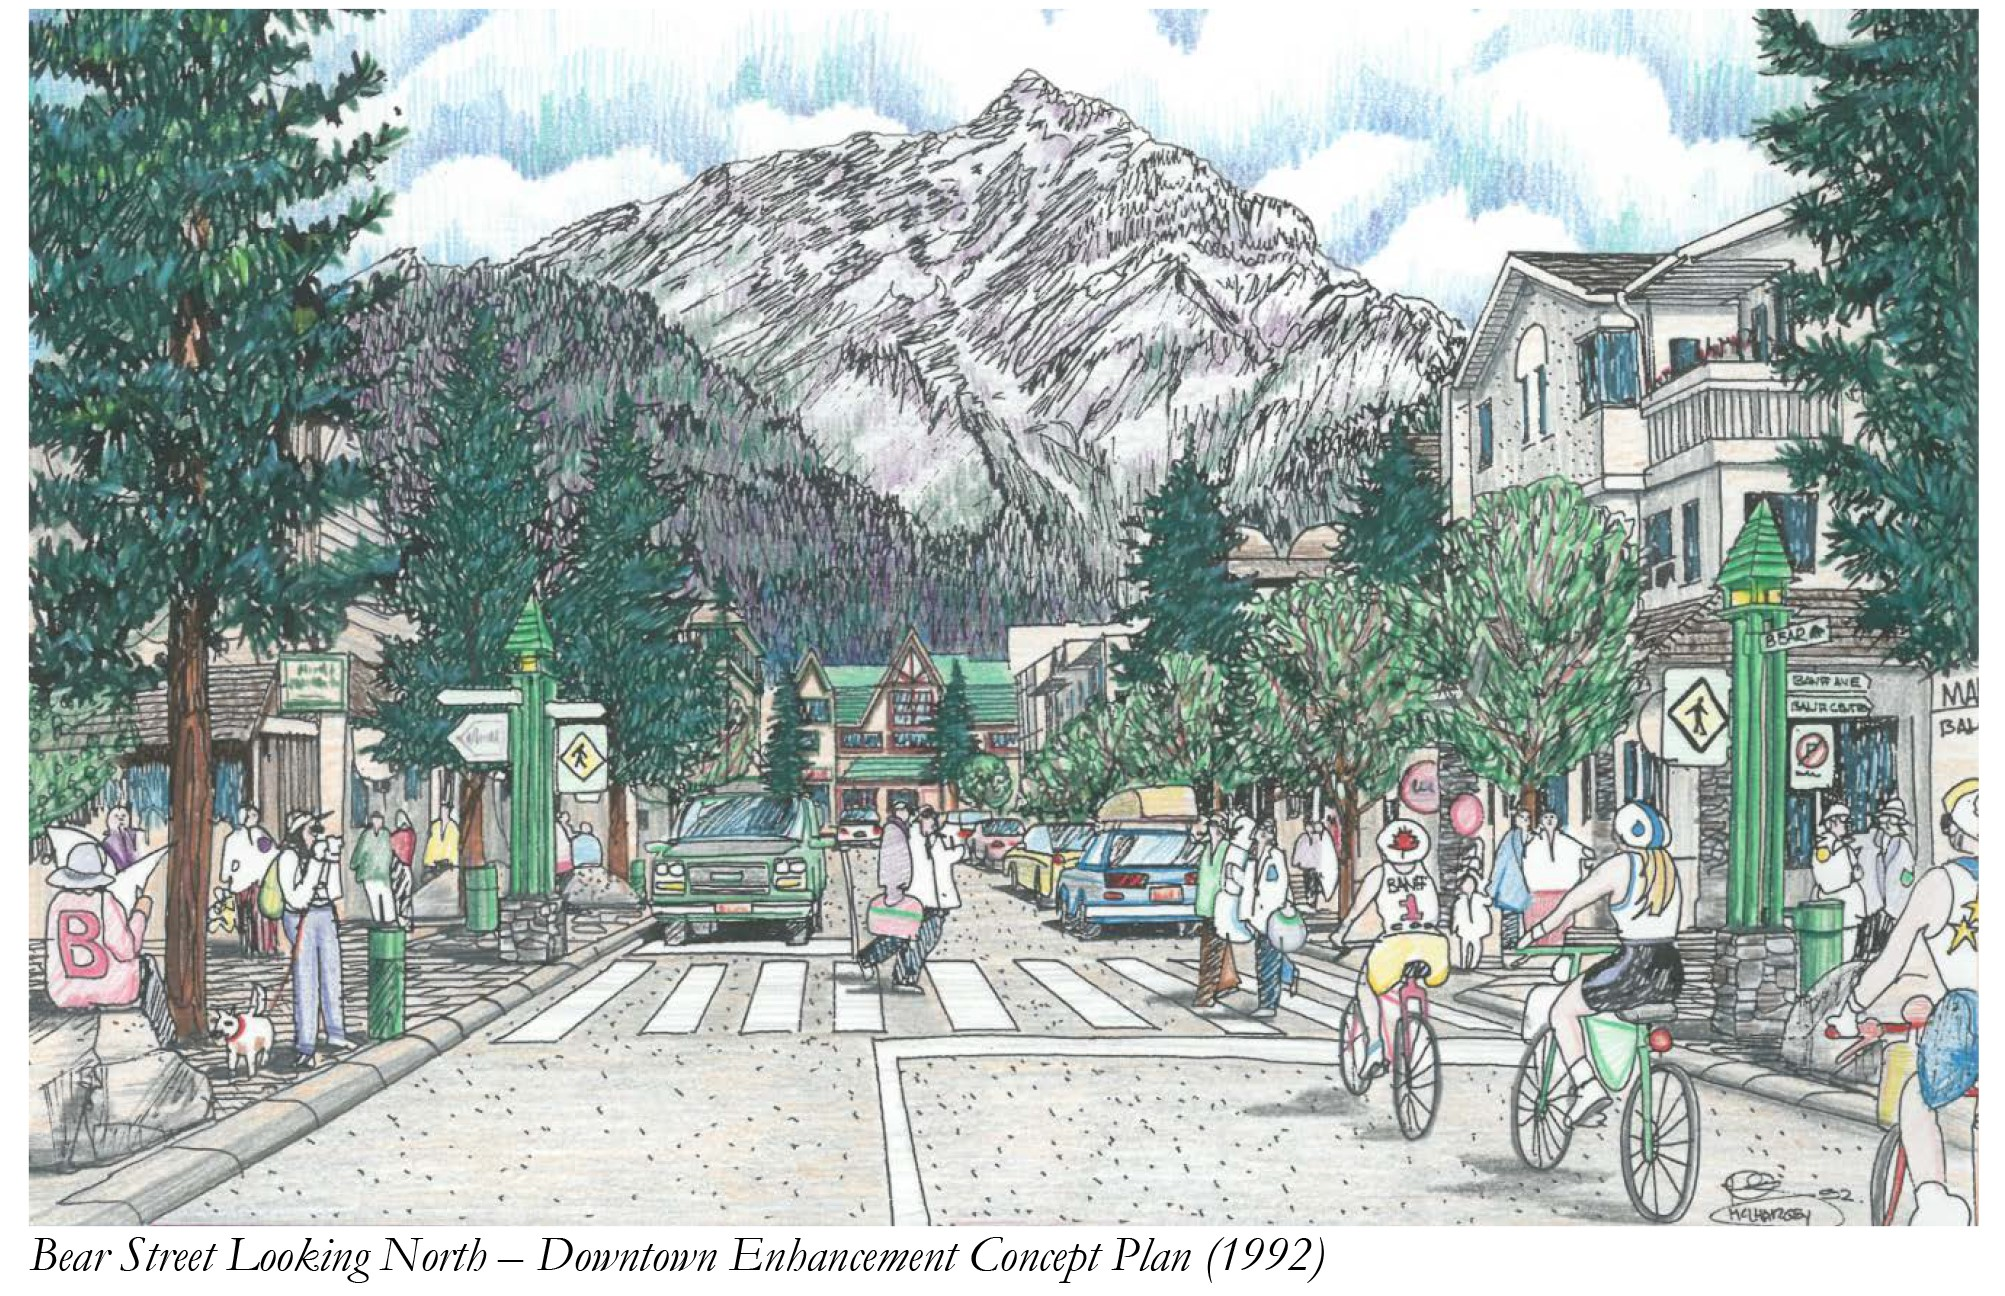 Bear Street Looking North - Downtown Enhancement Concept Plan (1992) (JPG)